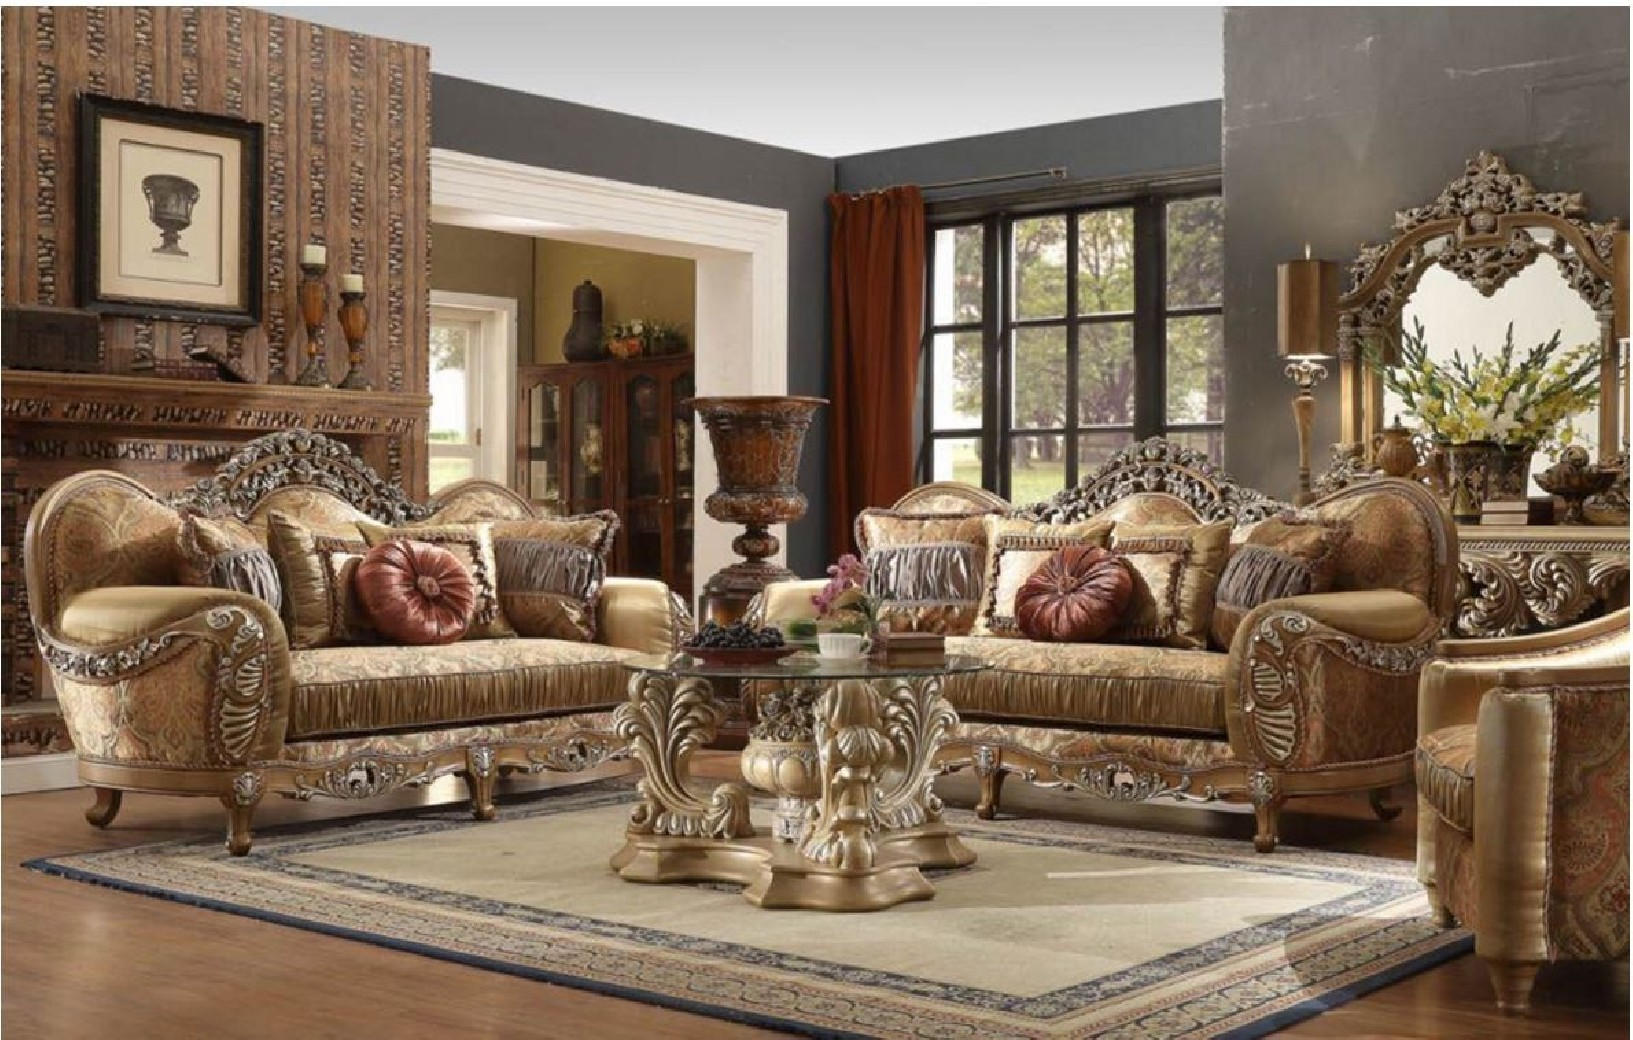 victoria sofa set victorian traditional antique style sofa loveseat formal living thesofa. Black Bedroom Furniture Sets. Home Design Ideas